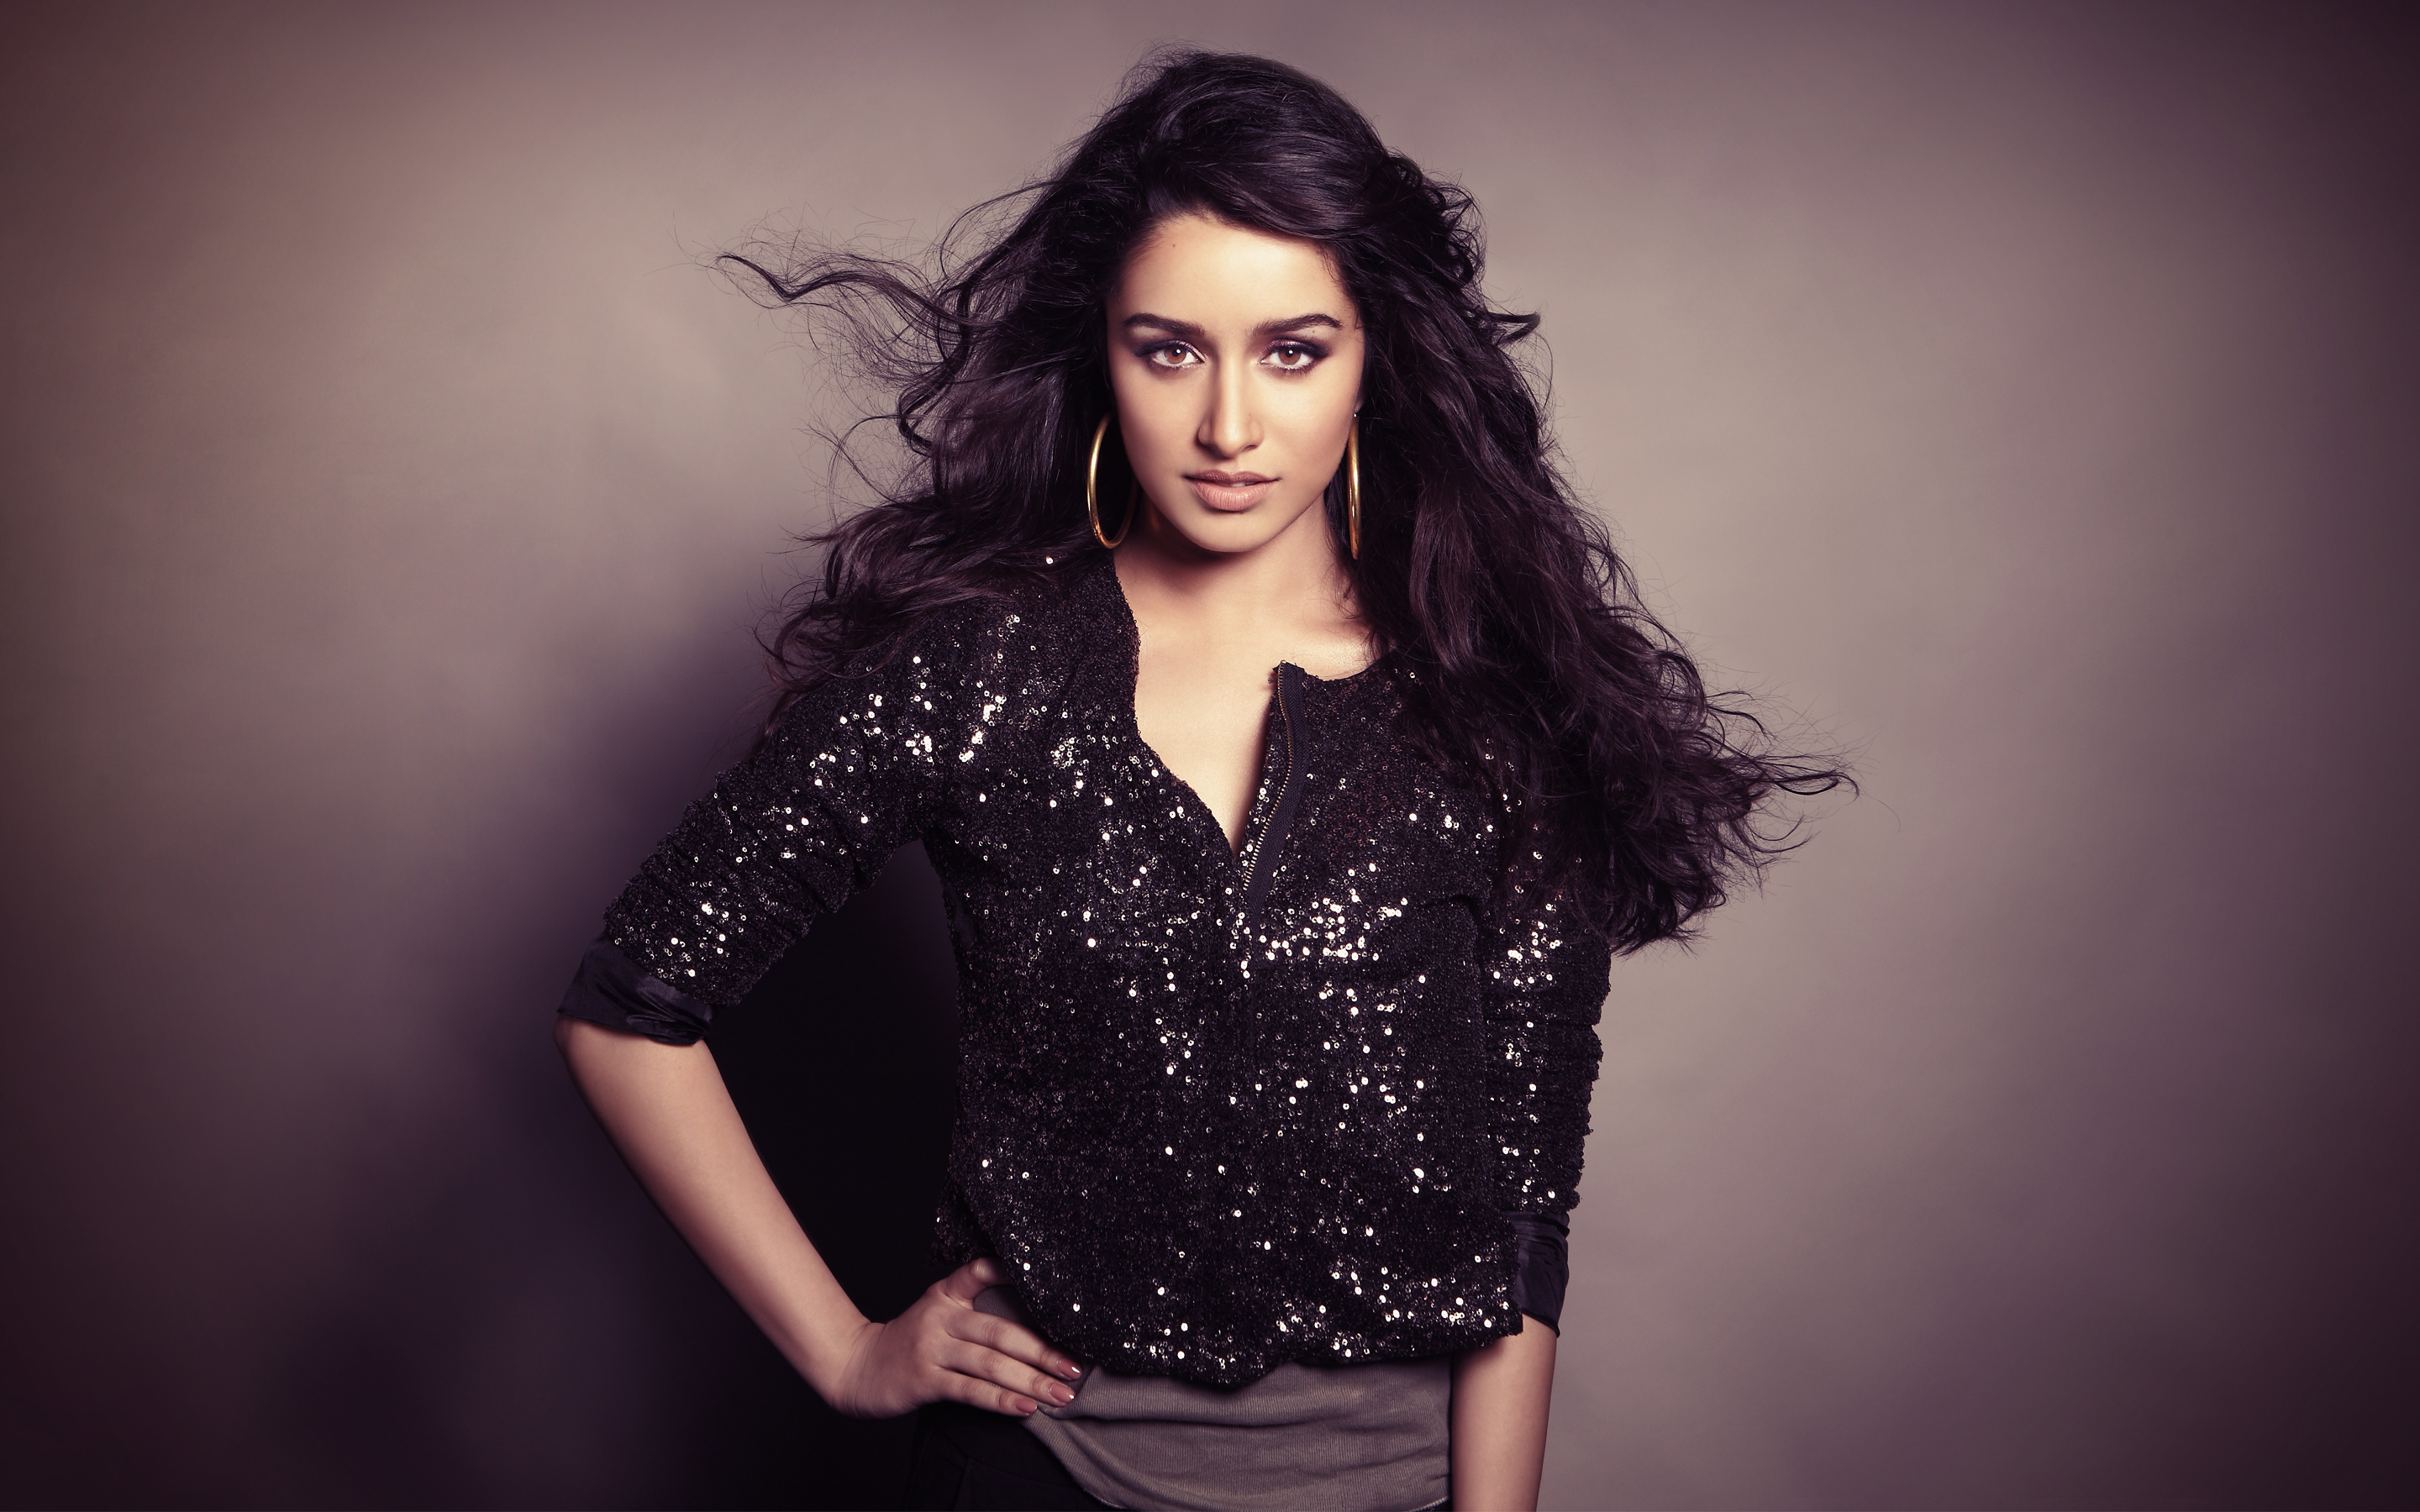 Actress Shraddha Kapoor 2000.6 Kb